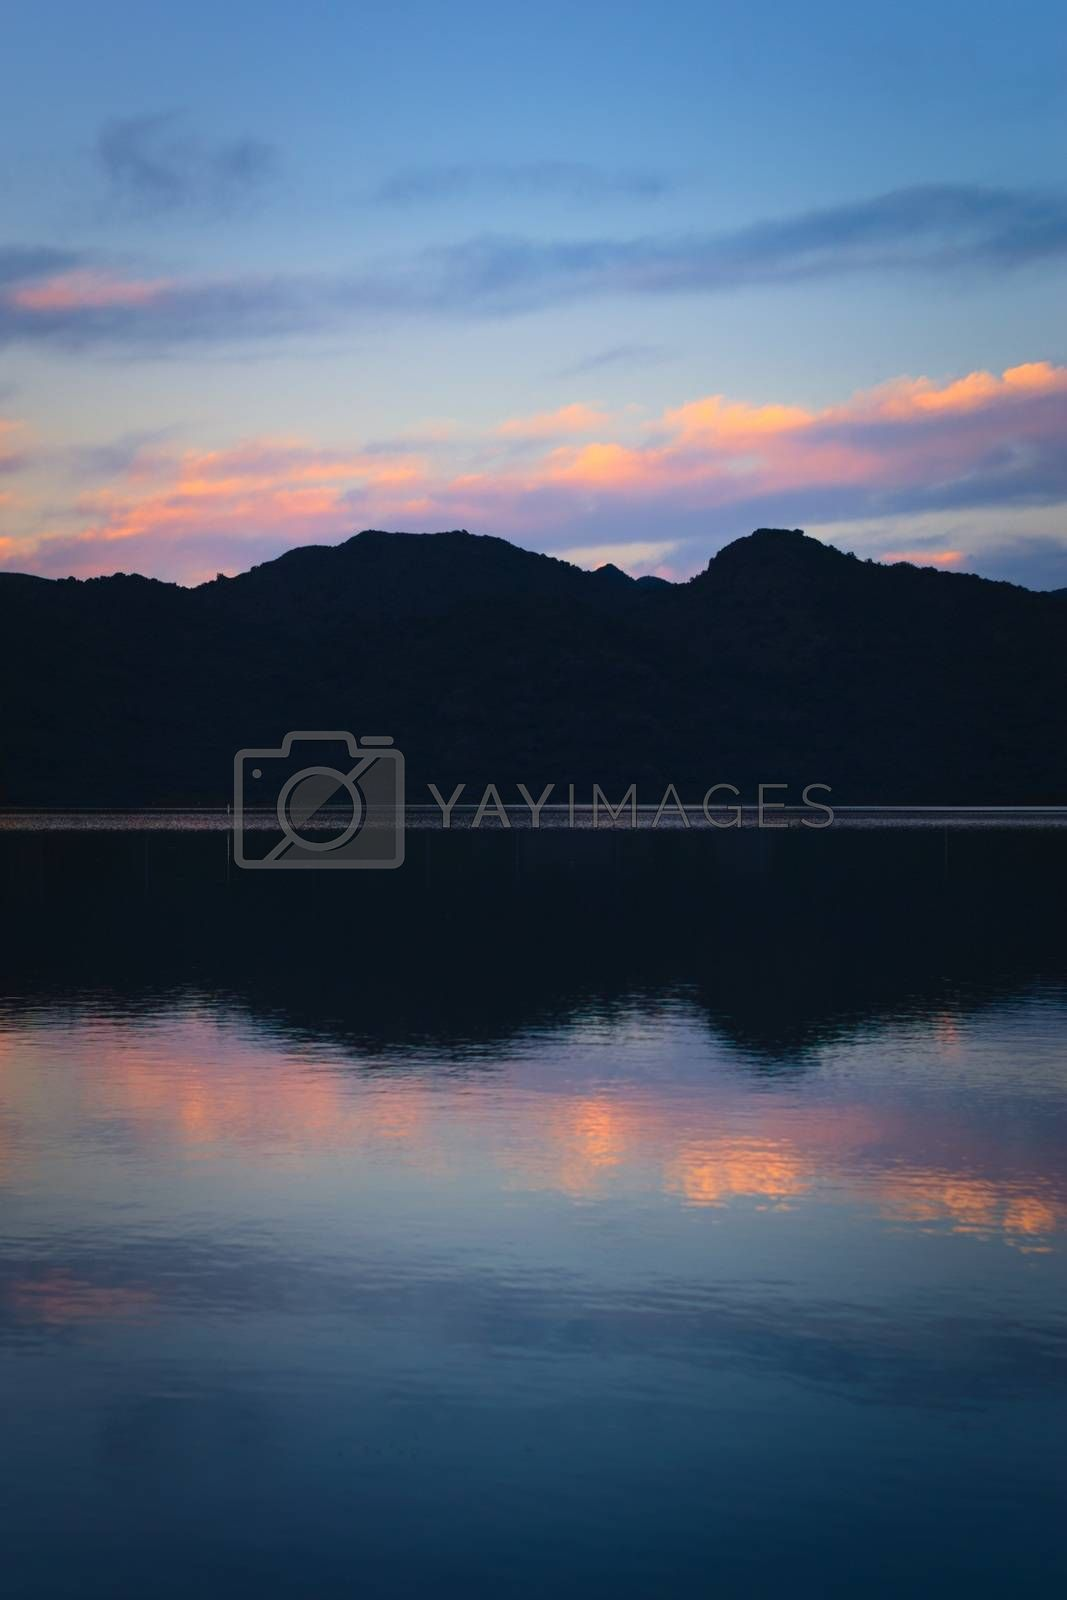 Royalty free image of Blue twilight sky and dark mountains reflected on lake by hernan_hyper